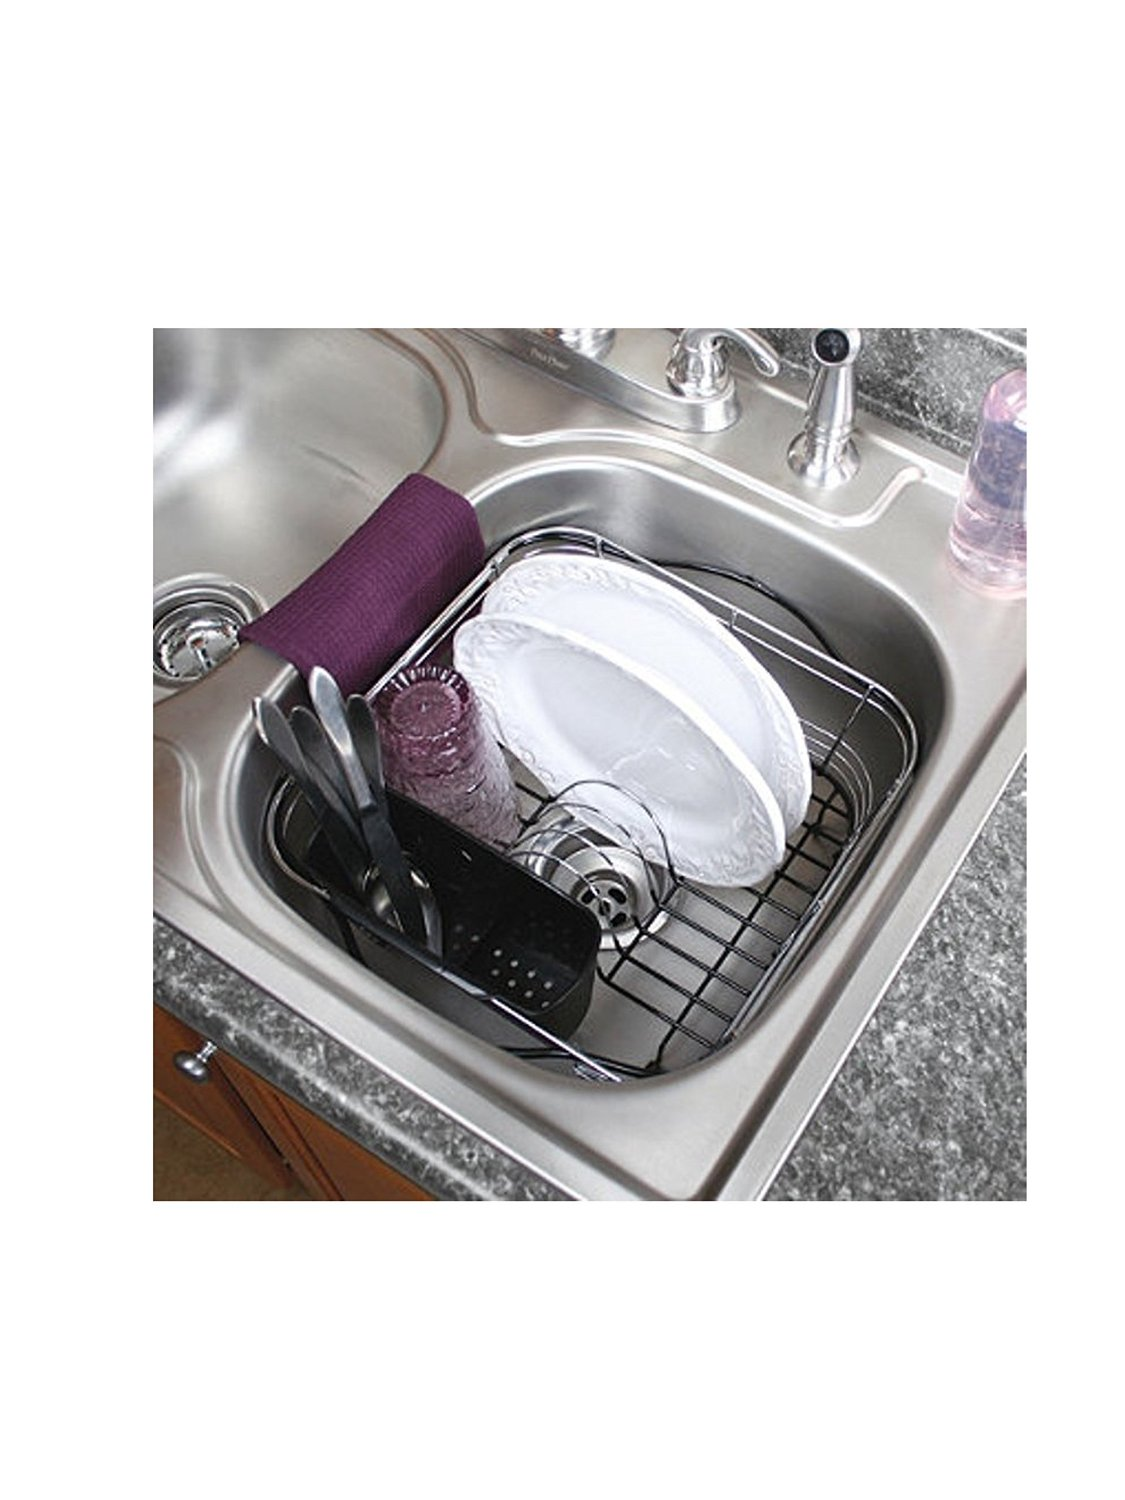 Kitchen Sink Drain Rack Dish drying rack in sink on counter or expandable over the sink dish rack dish rack2 dishrack4 dishrack1 dishrack3 workwithnaturefo